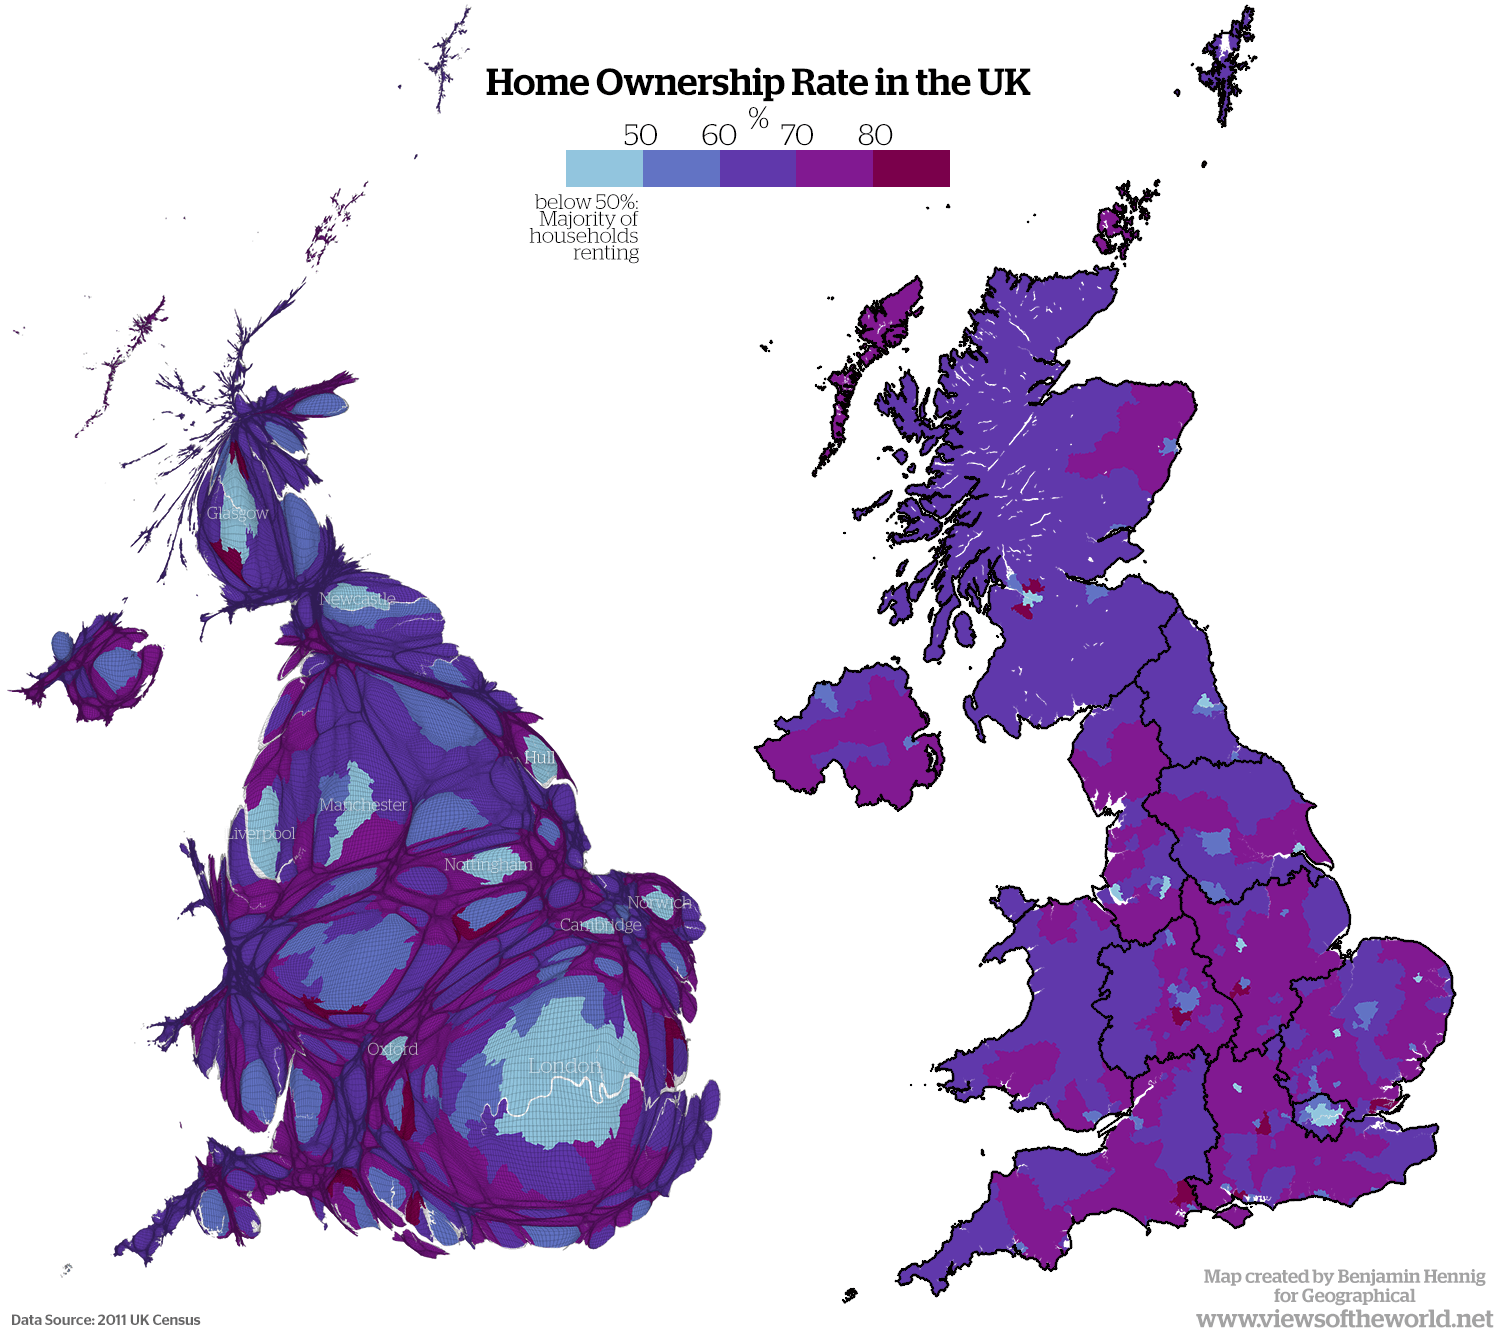 Cartogram and map of home ownership in the UK